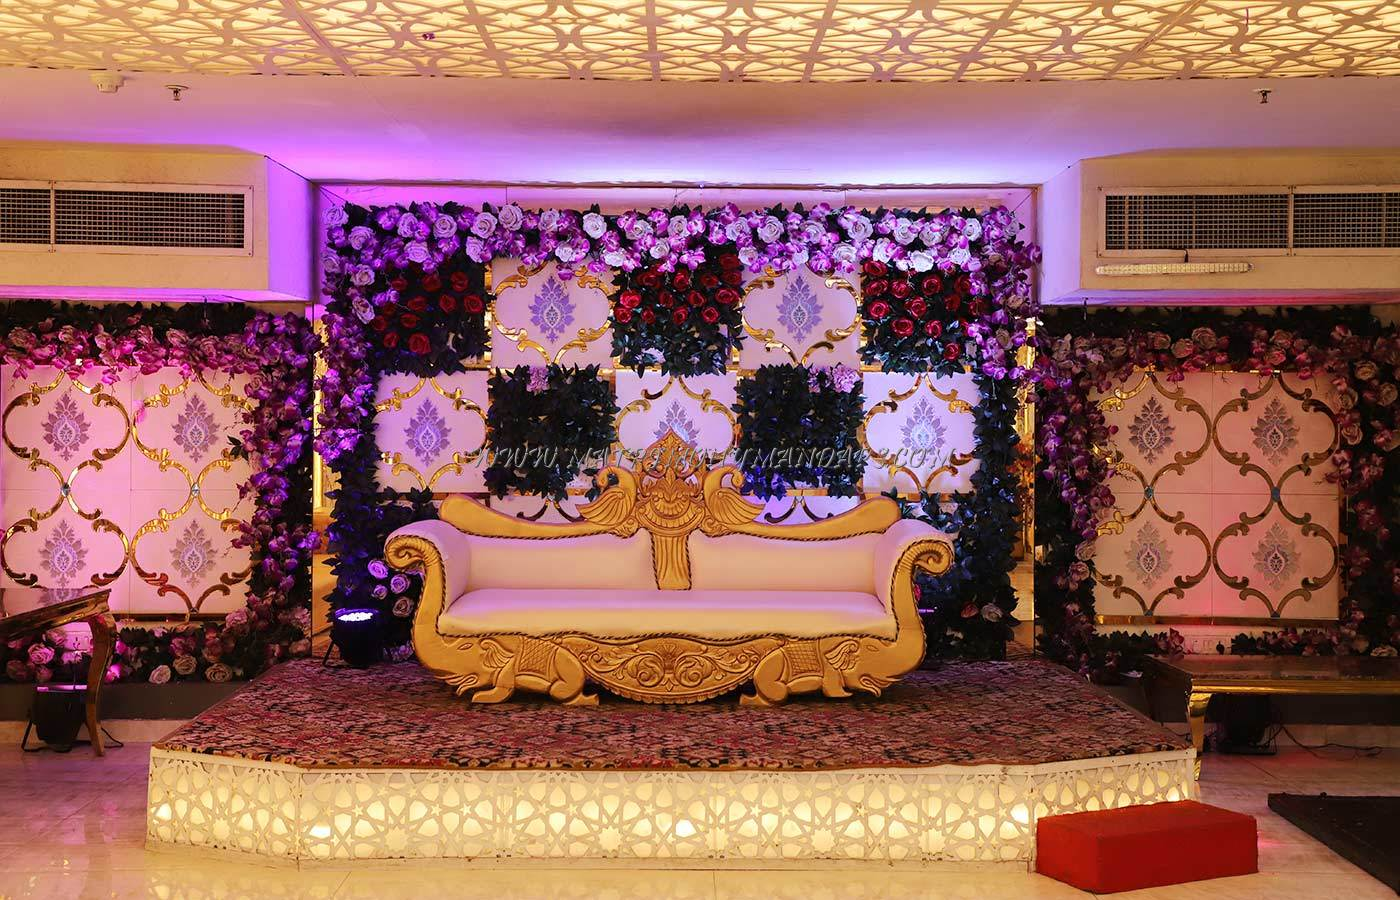 Find More Banquet Halls in Nehru Place